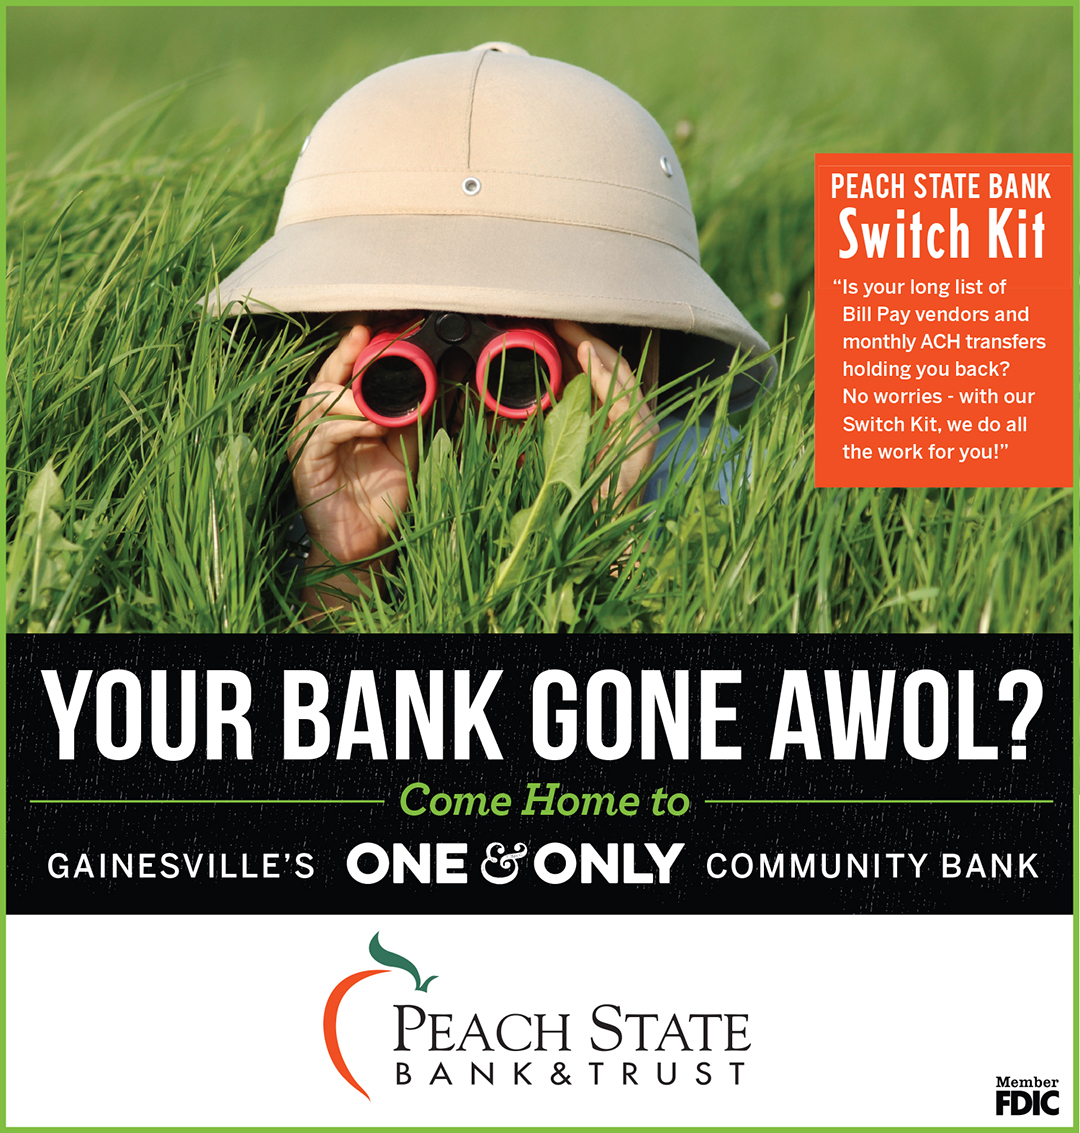 Peach State Bank - Advertising